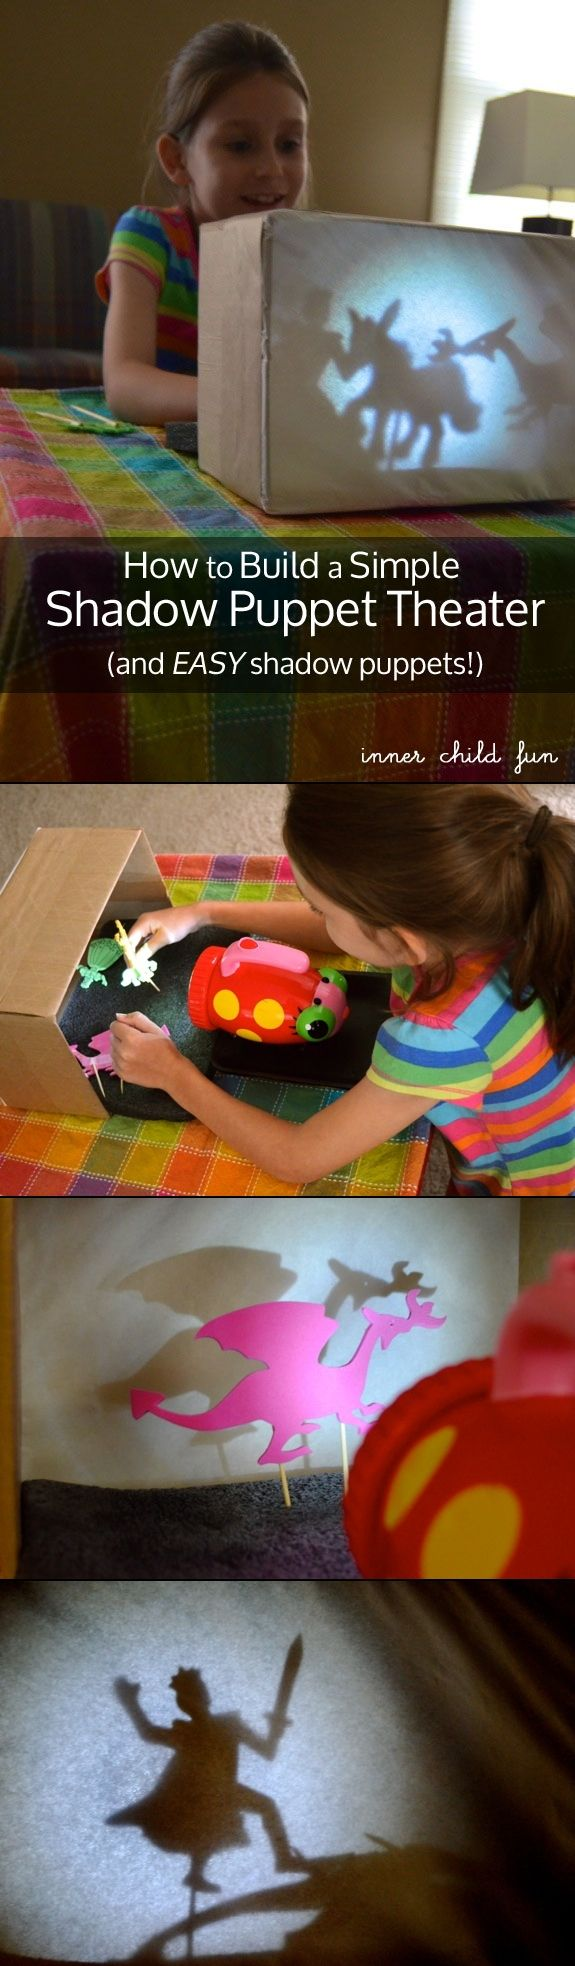 How to Build a Simple Shadow Puppet Theater (with simple foam stickers) #kids #play